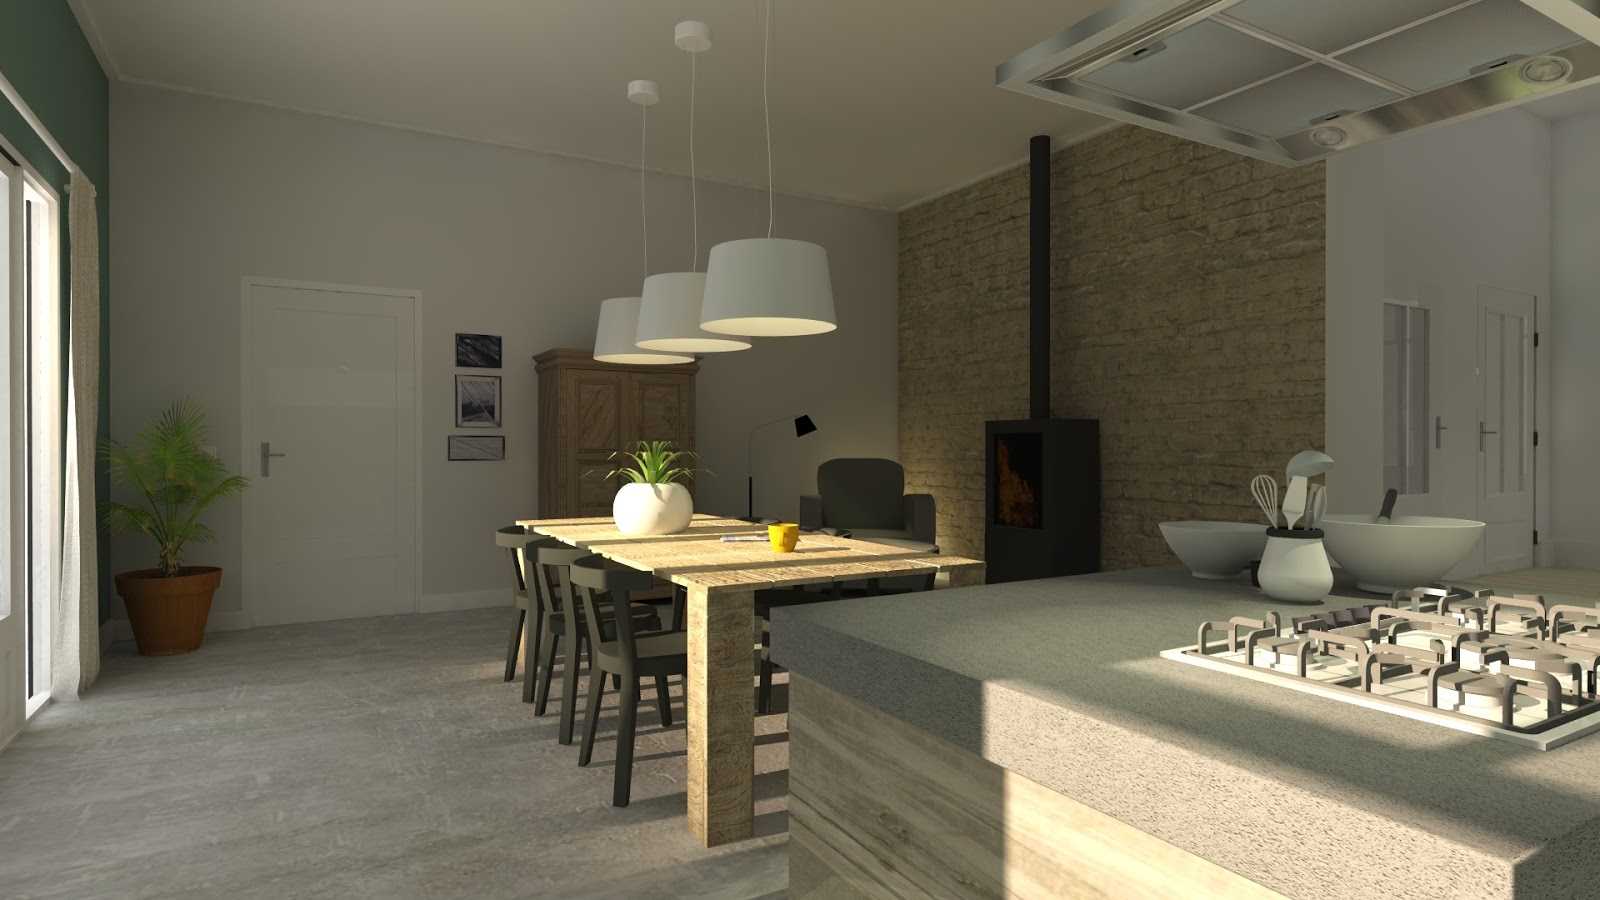 Woonkamer Ideen Taupe : Licht taupe woonkamer my choice september 2013 woonkamer pinterest